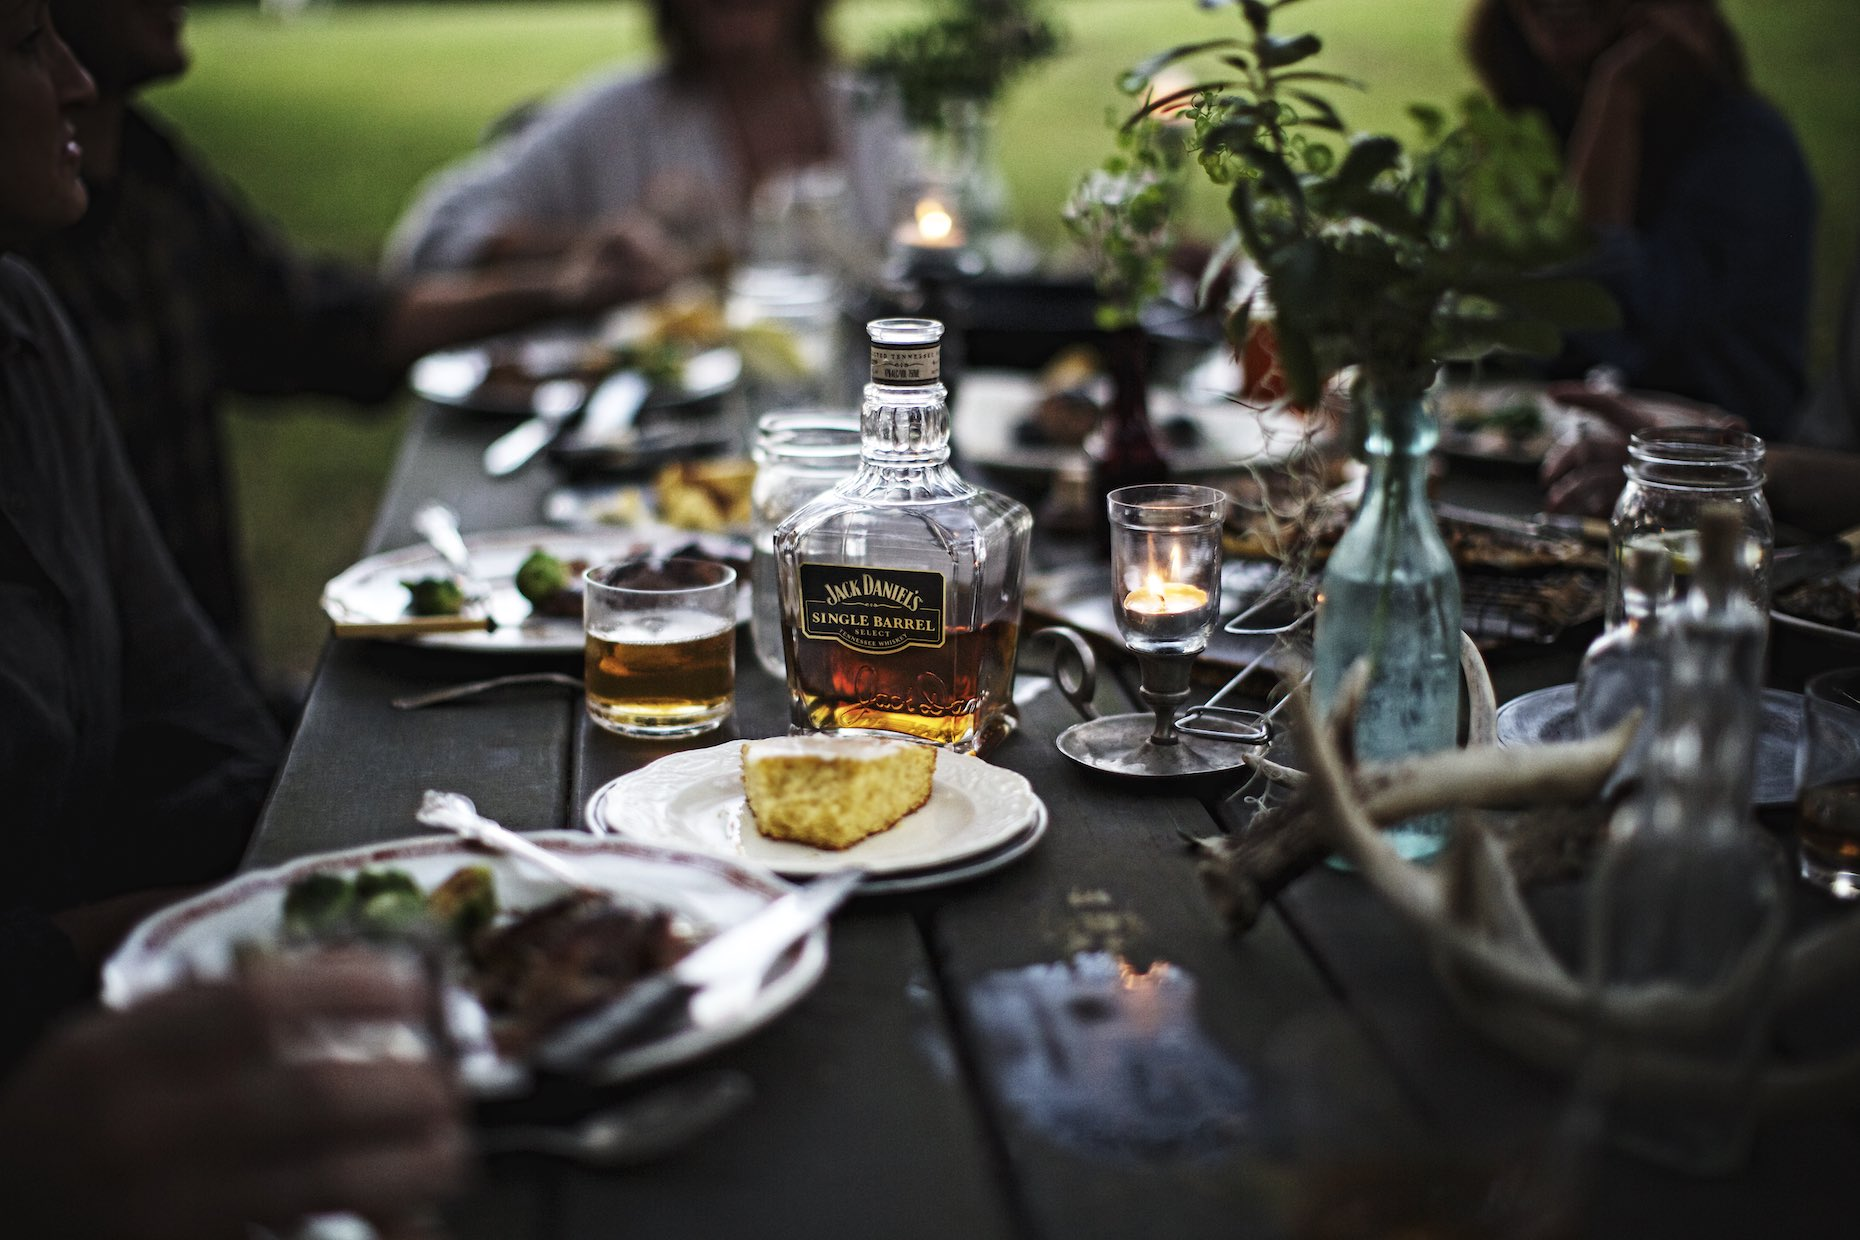 Outdoor, candlelit dinner spread with Jack Daniel